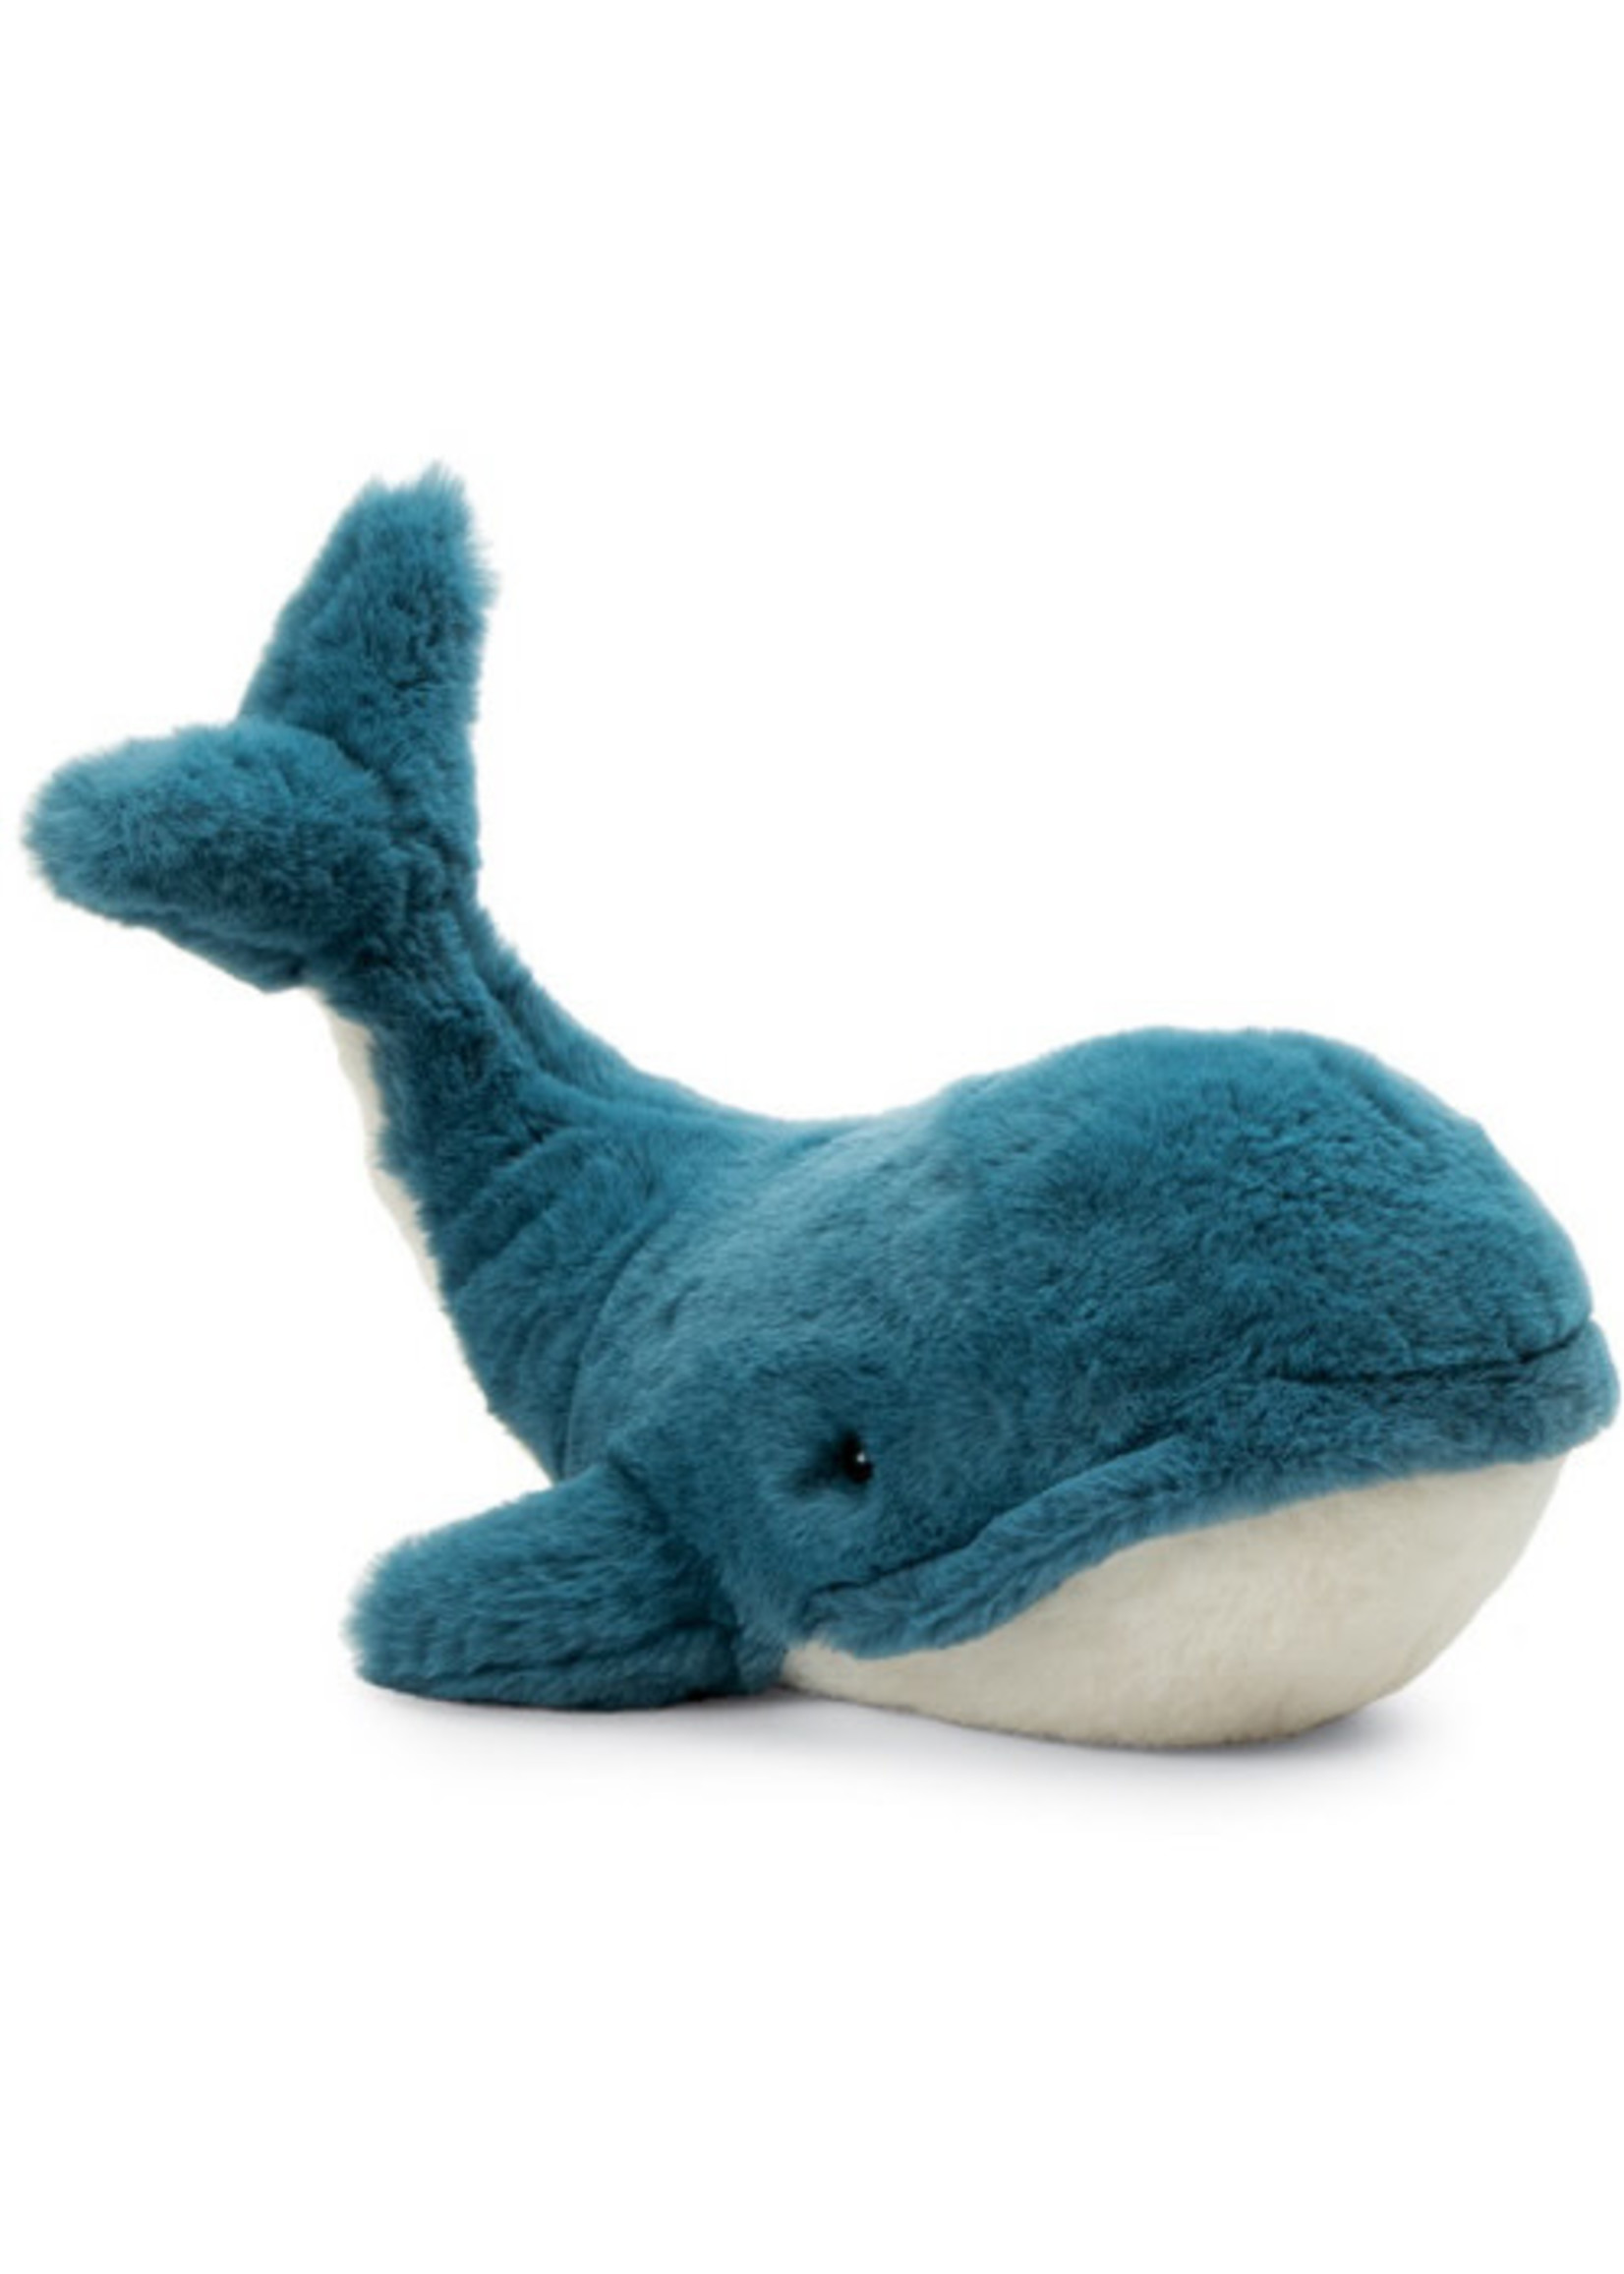 Jellycat JC Small Wally Whale